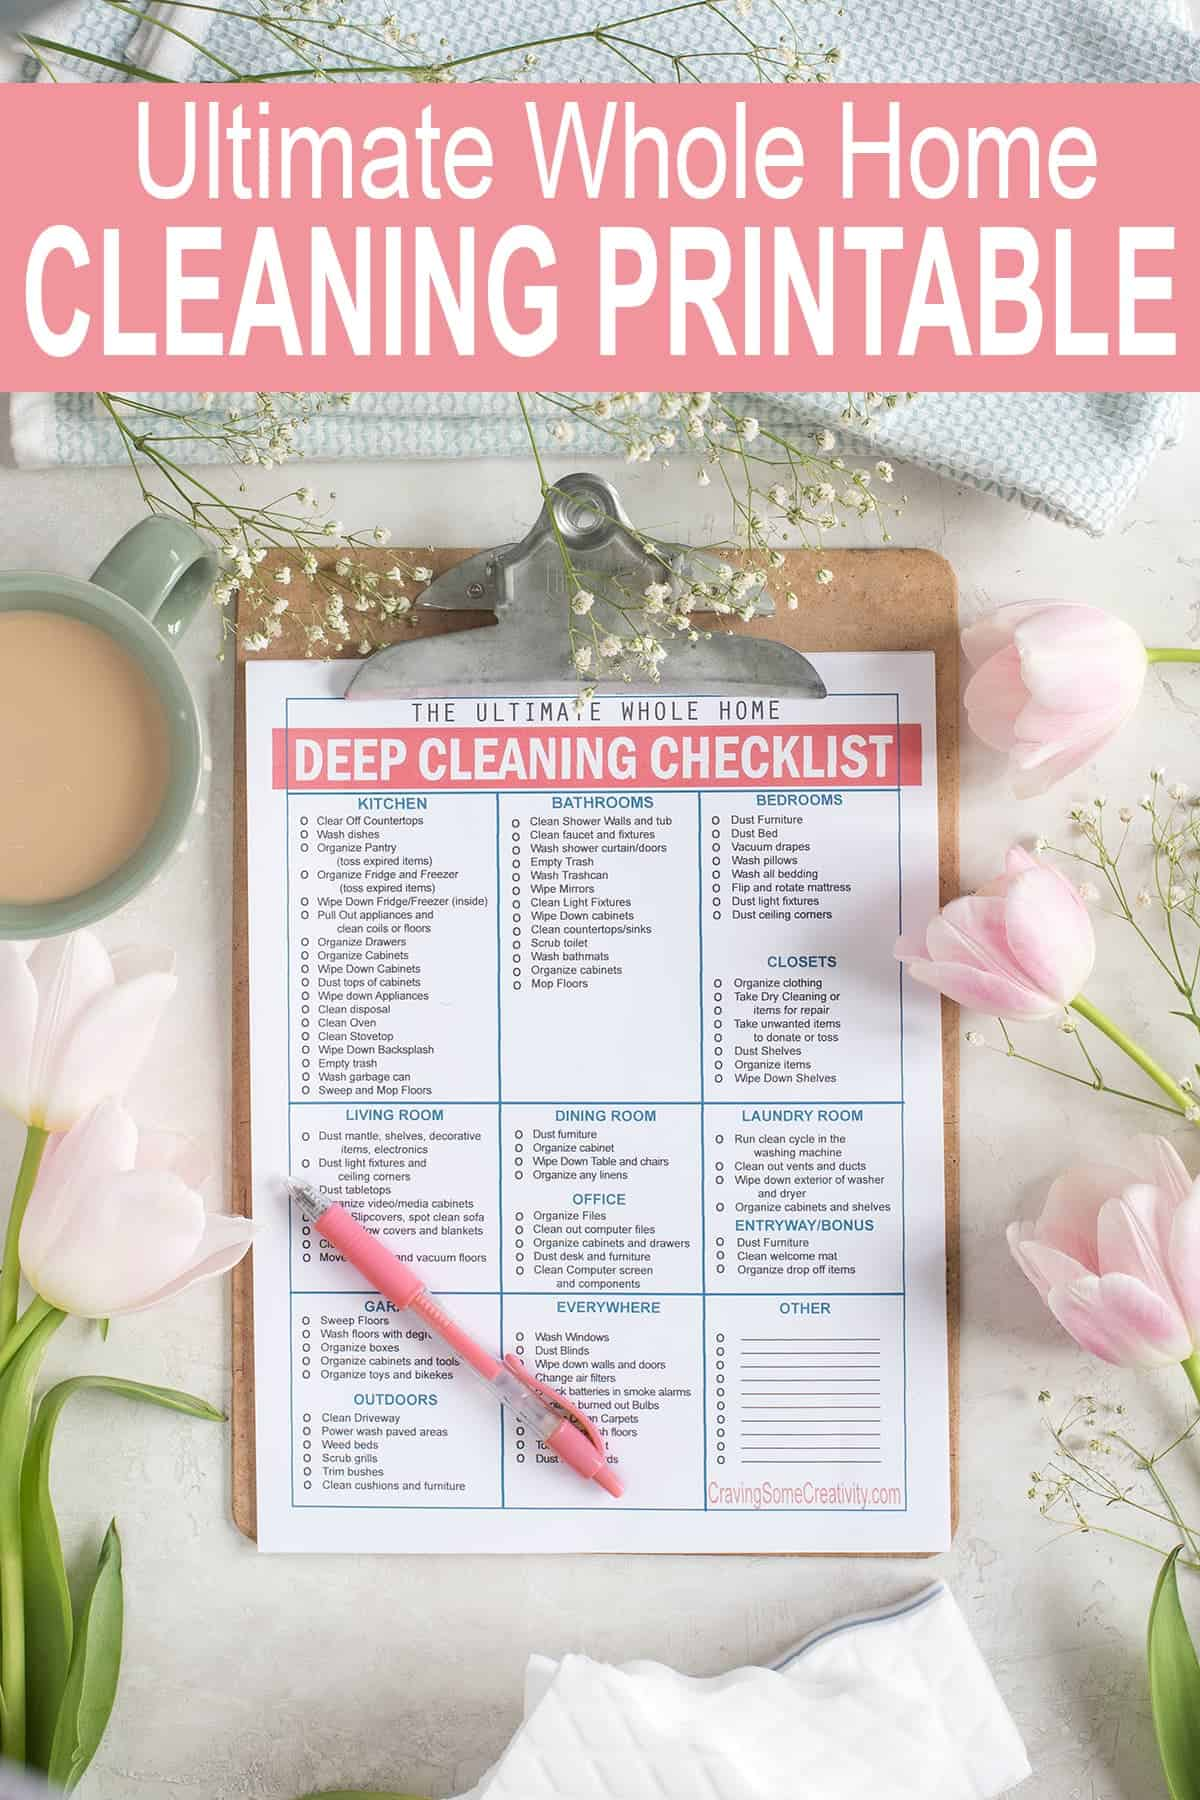 Whole House Deep Cleaning Checklist on clipboard with pink pen. Cup of coffee, tulips and baby's breath in the background.